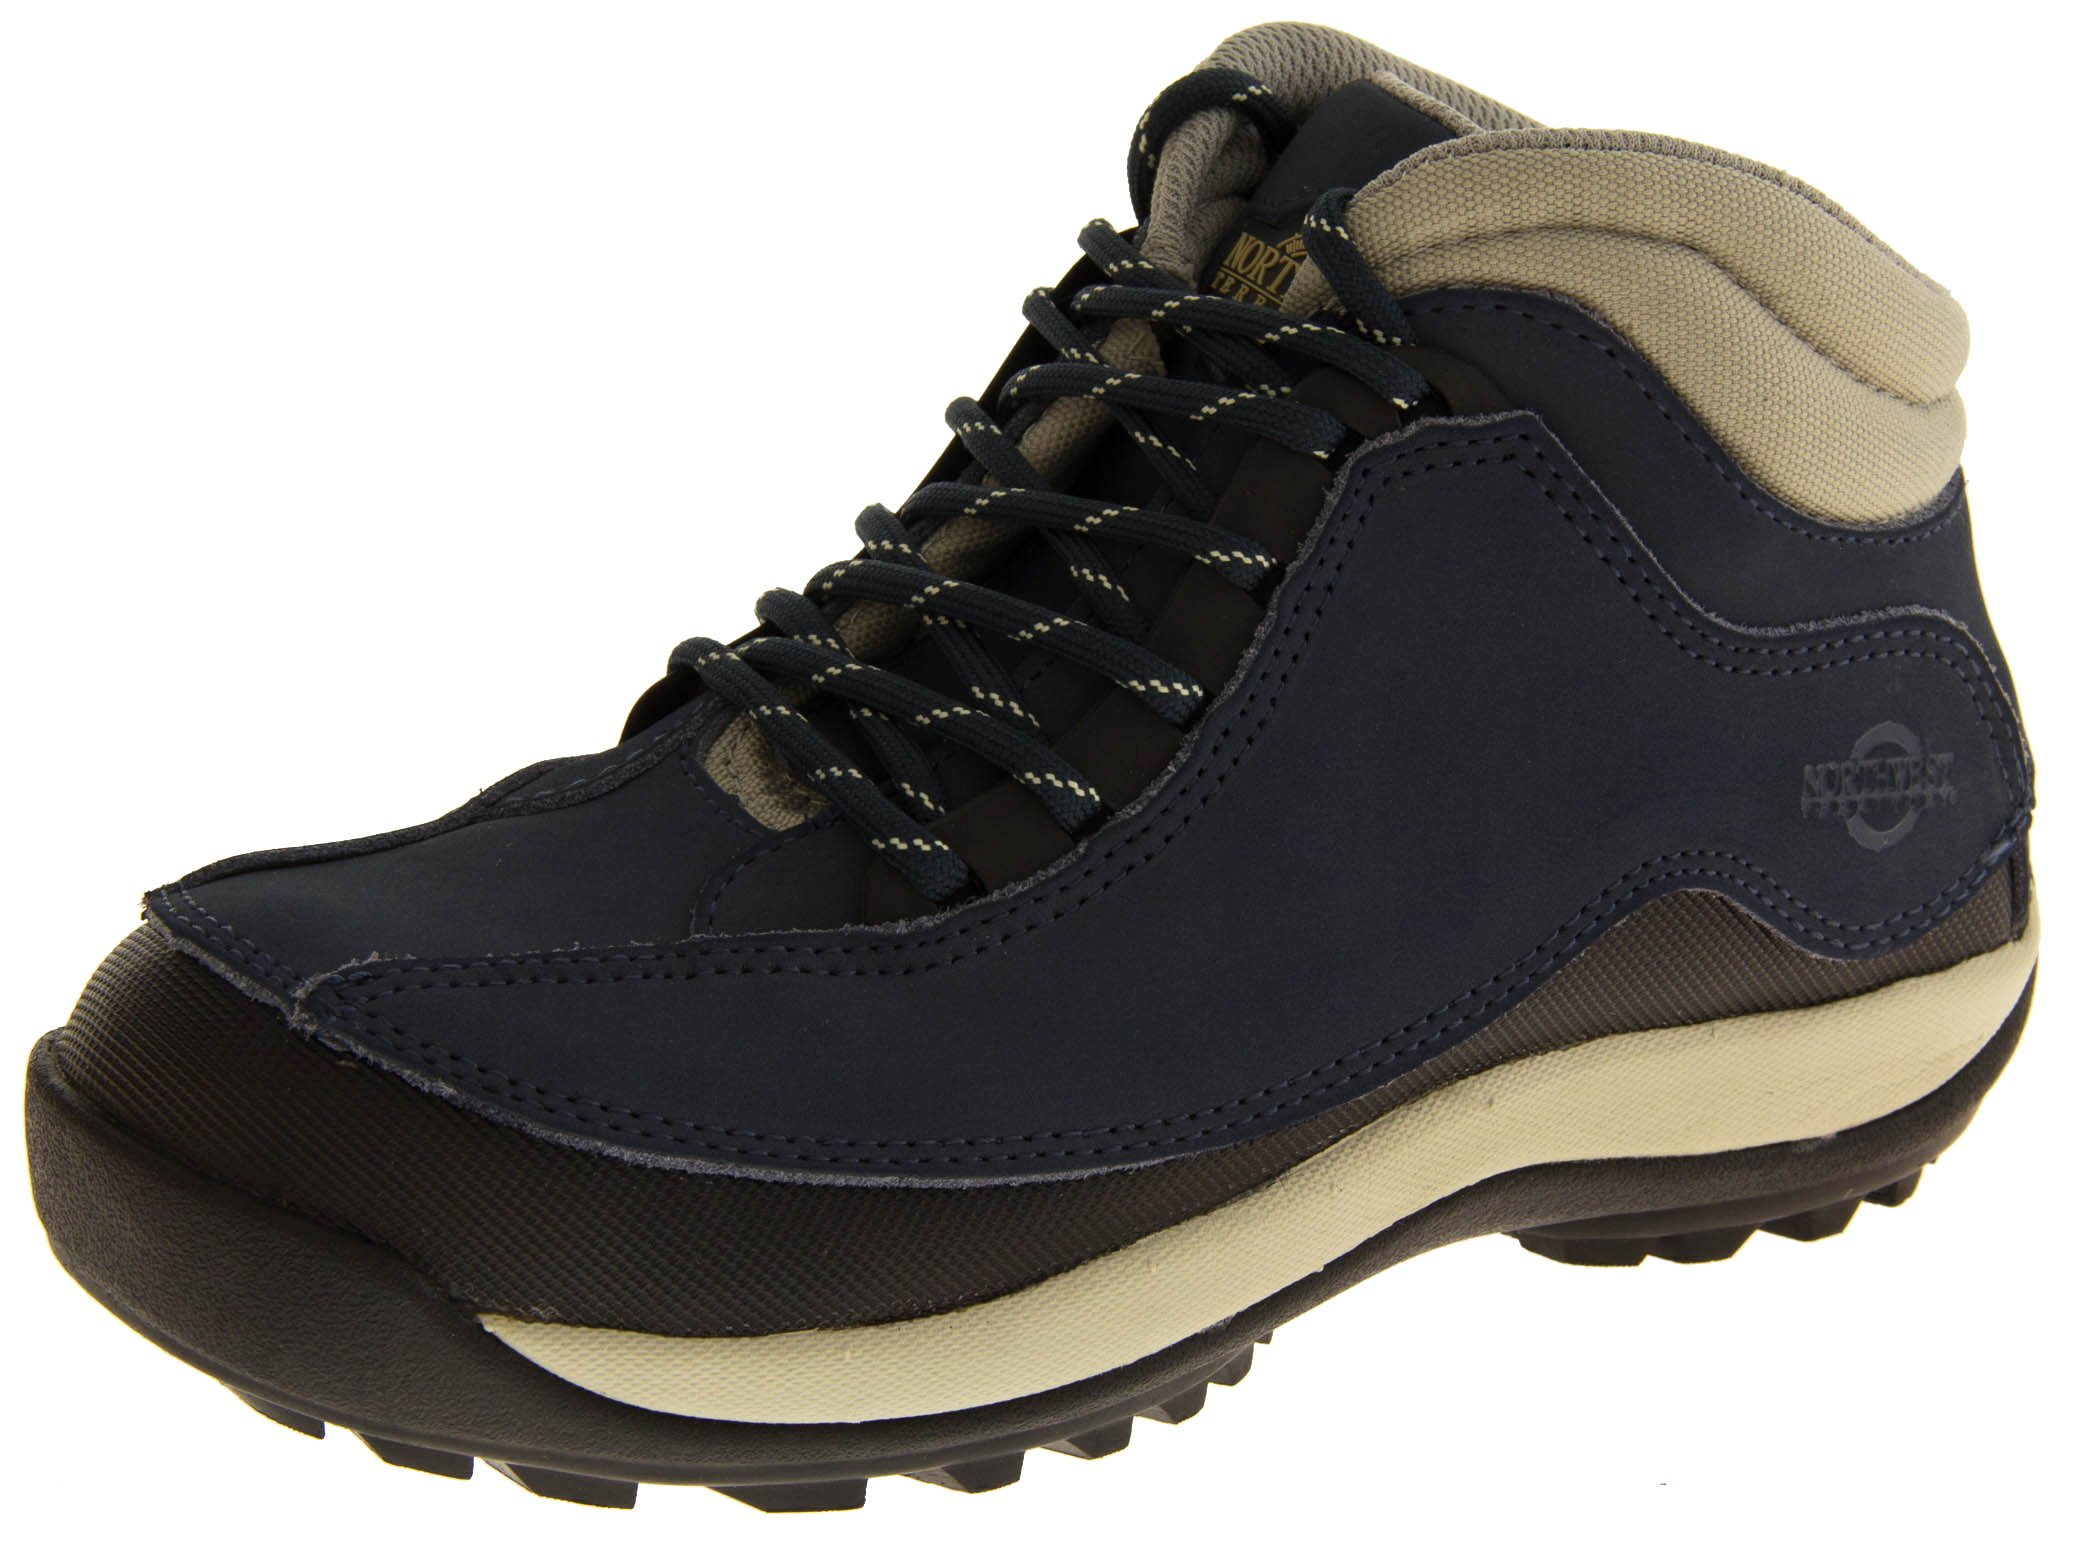 Northwest Territory Navy Blue Leather Safety Boots US 6